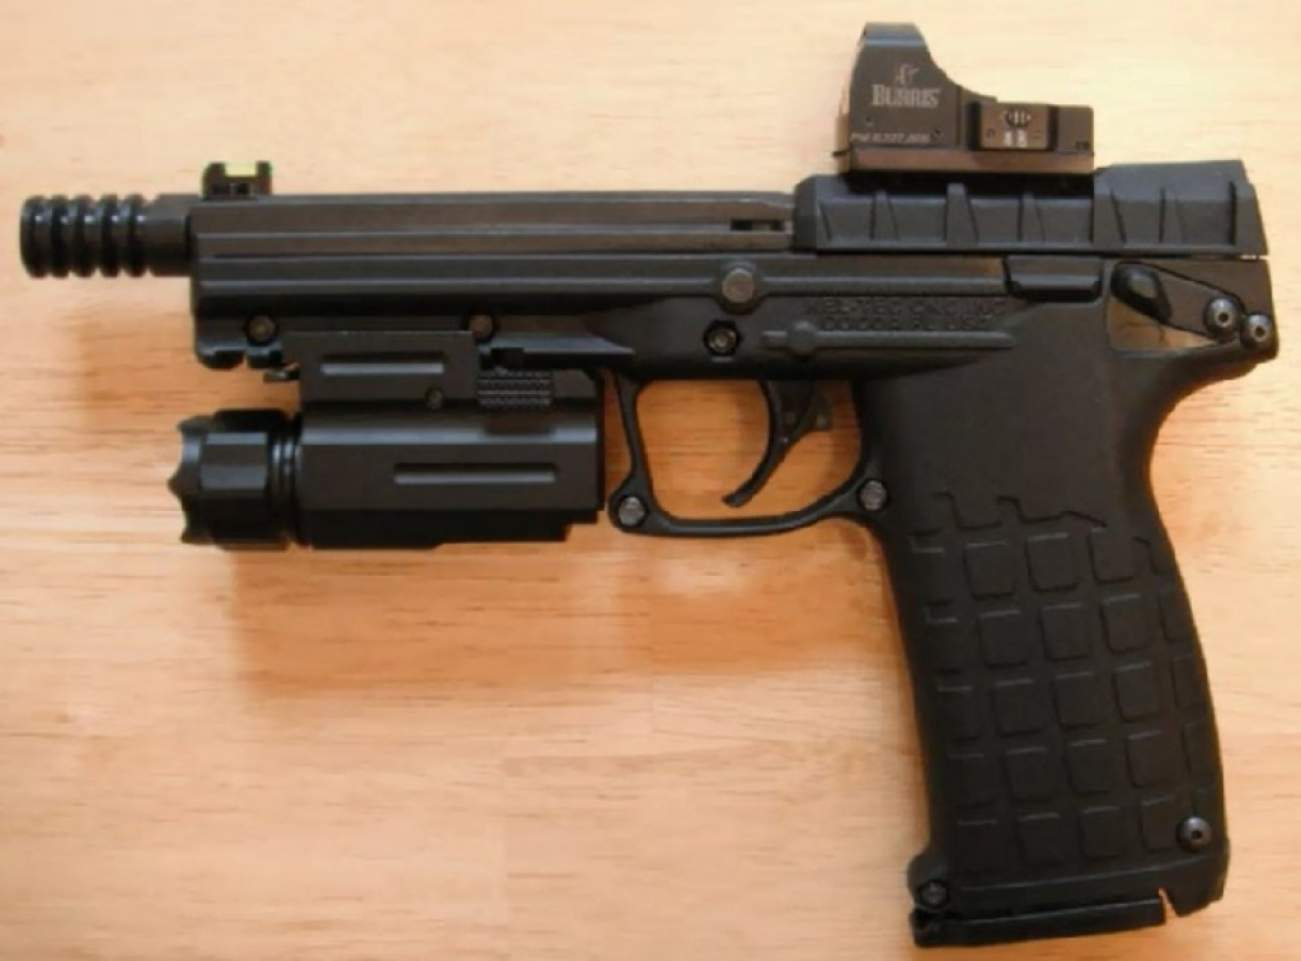 Fact: The Kel-Tec PMR-30 Can Hold 30 Rounds